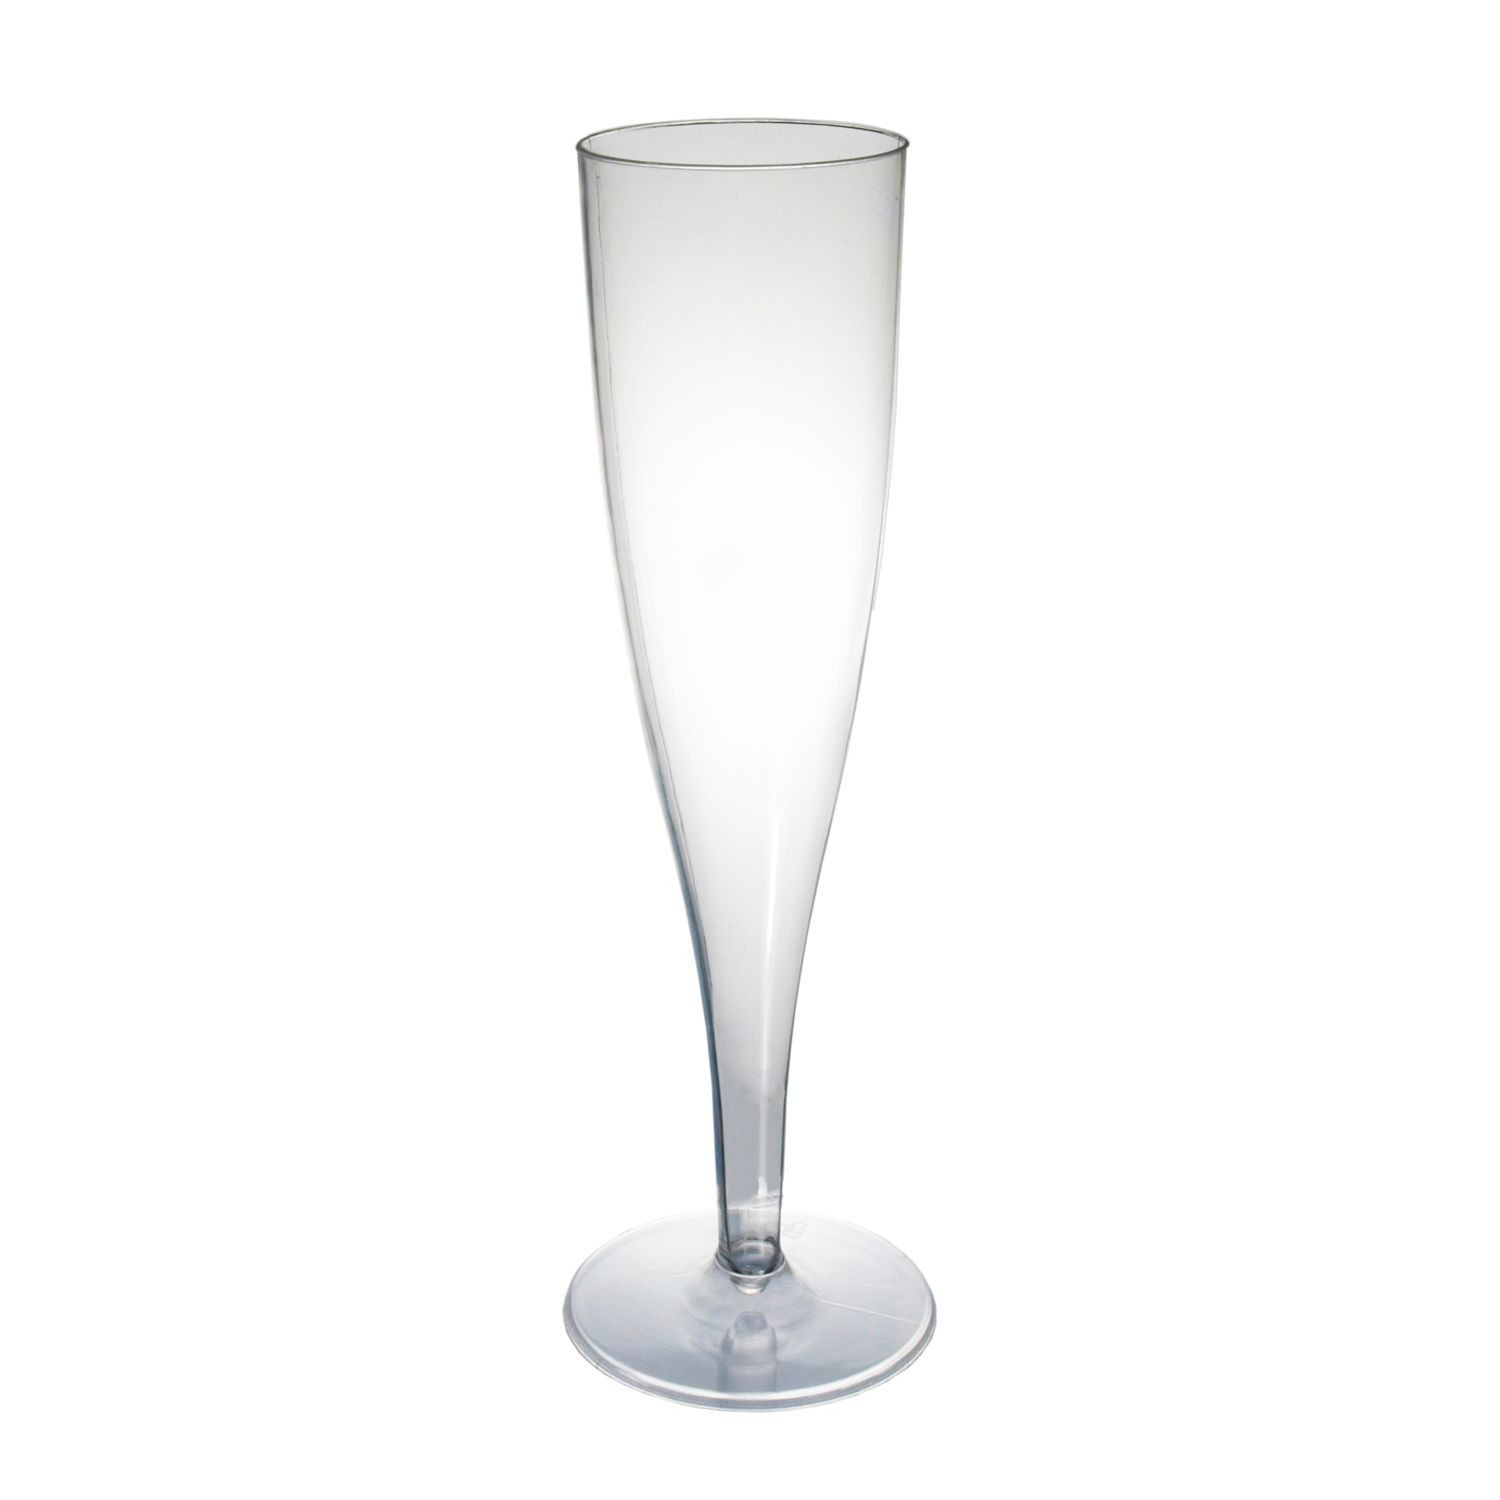 giant champagne glass vase of party essentials plastic champagne flutes 5 oz 60 ct sams regarding party essentials plastic champagne flutes 5 oz 60 ct sams